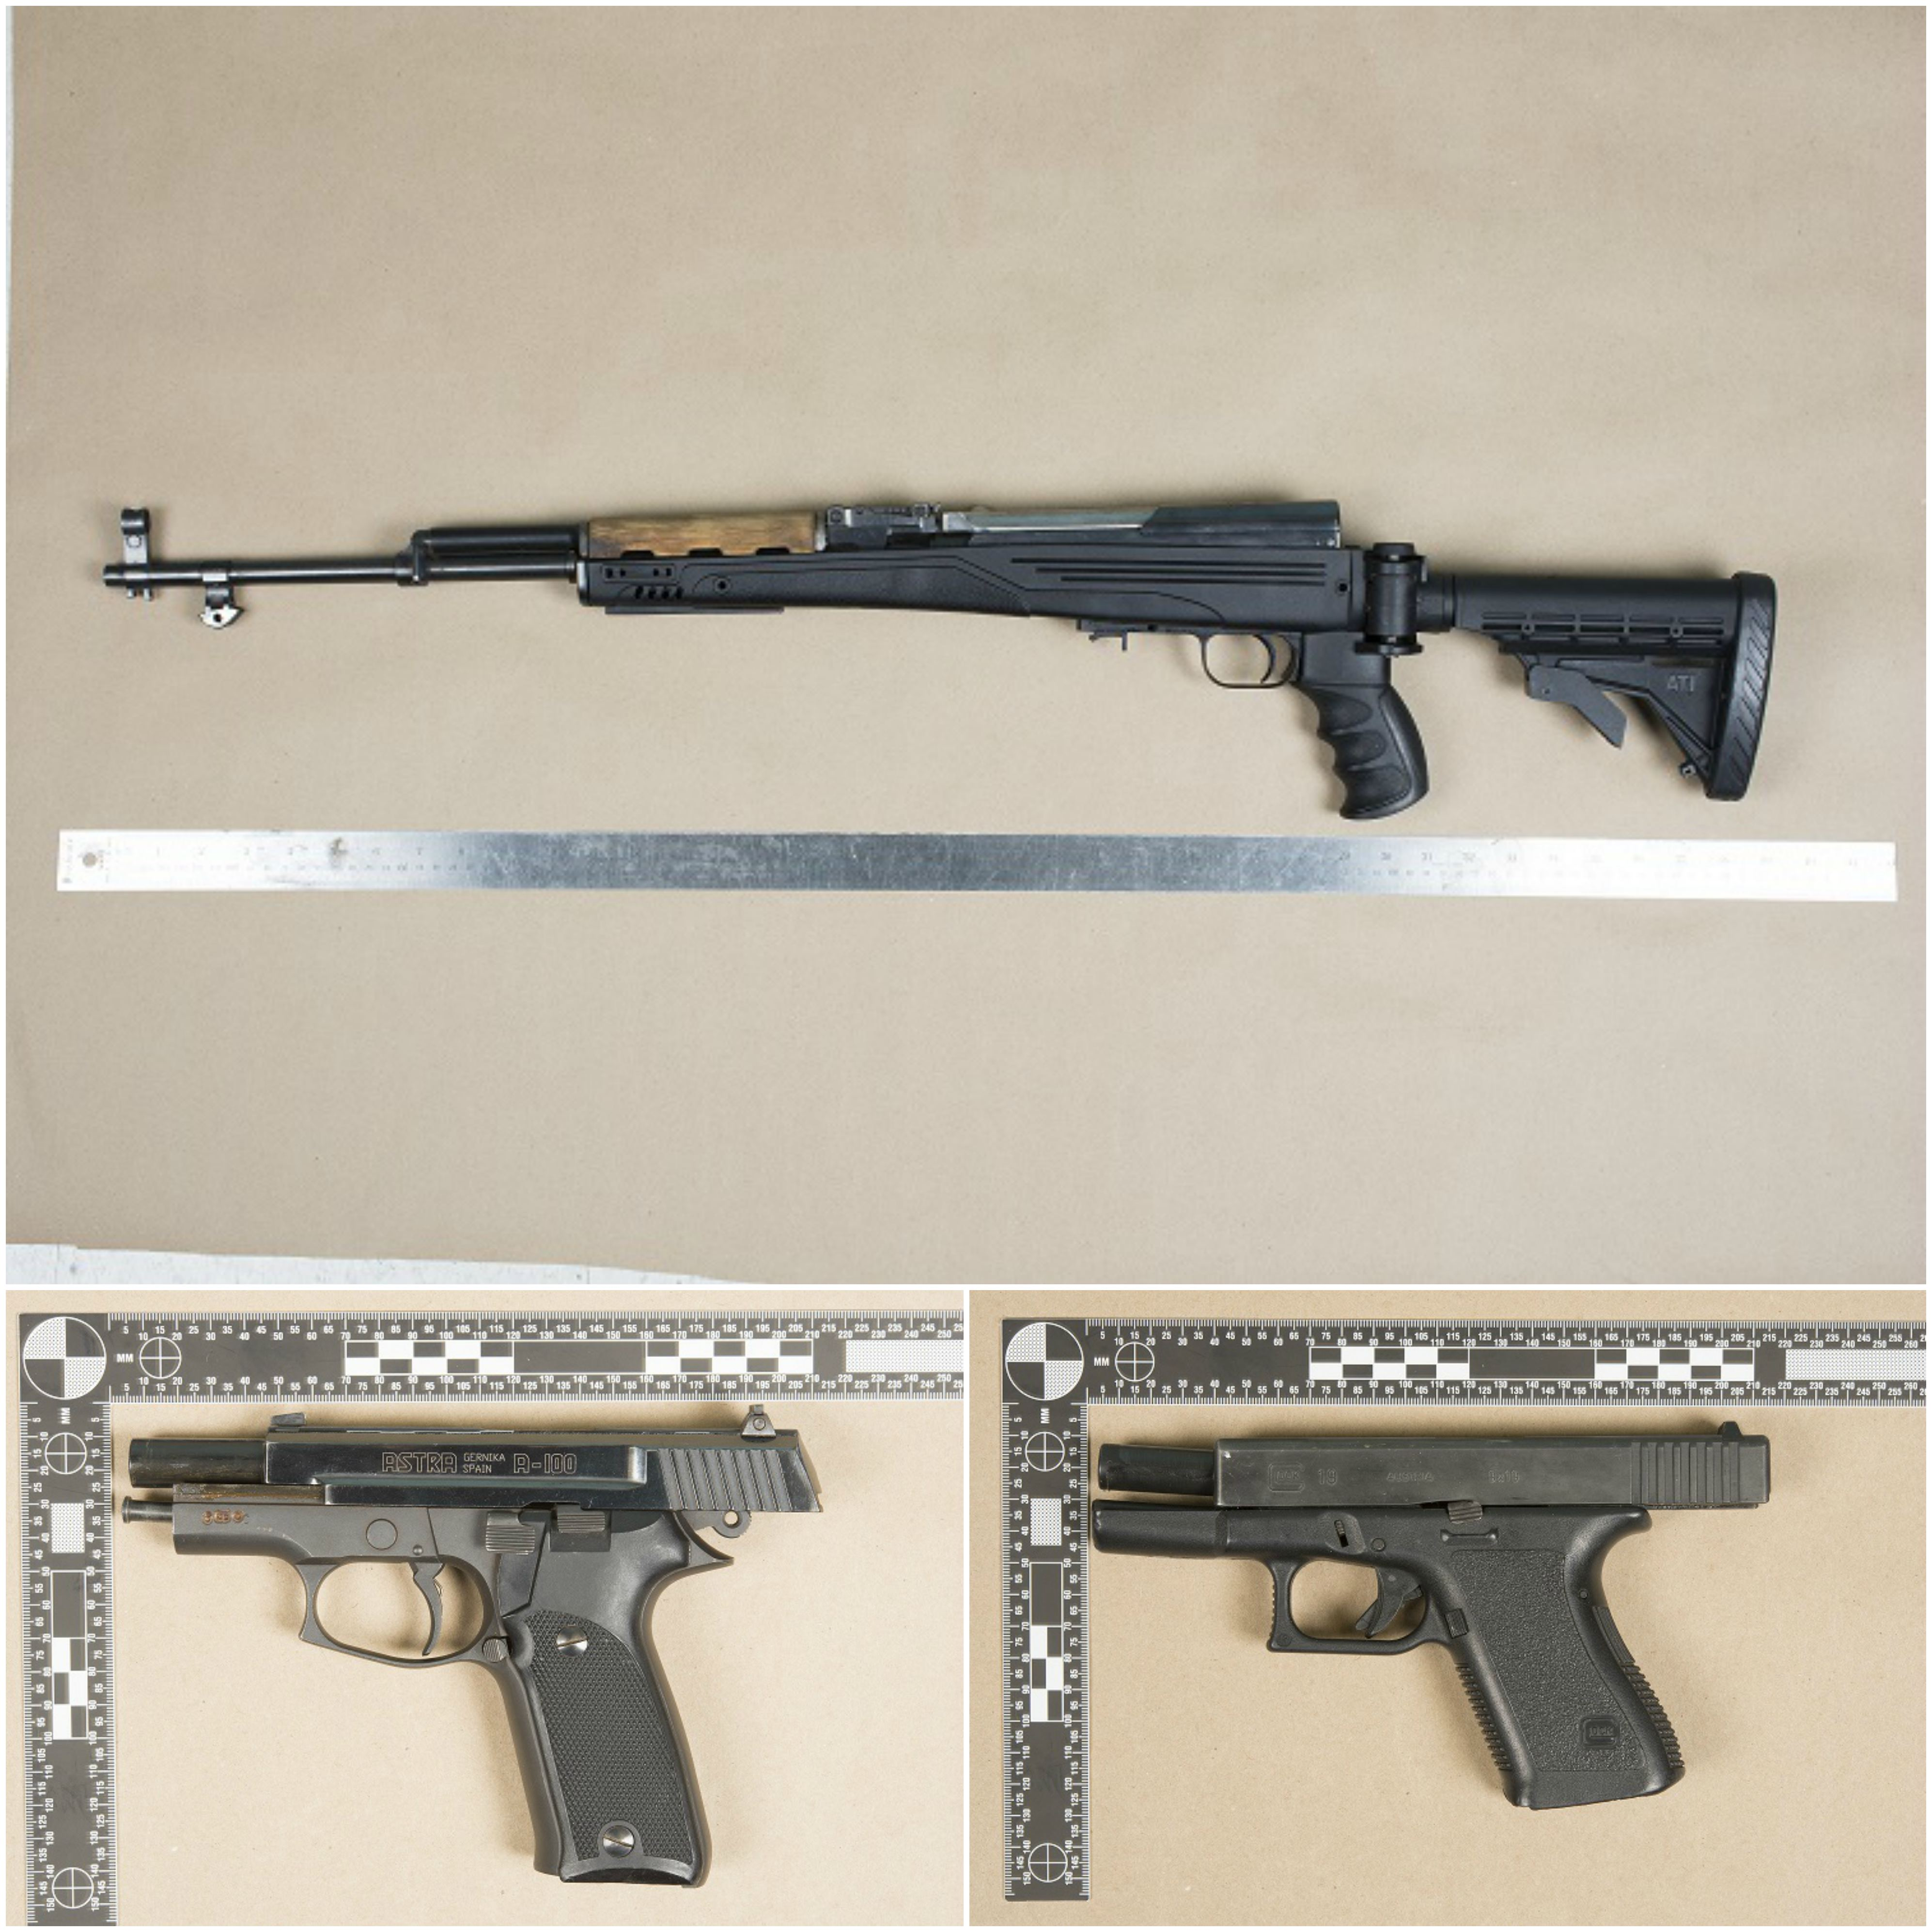 17-293 Firearms and Drugs Seized in Mississauga